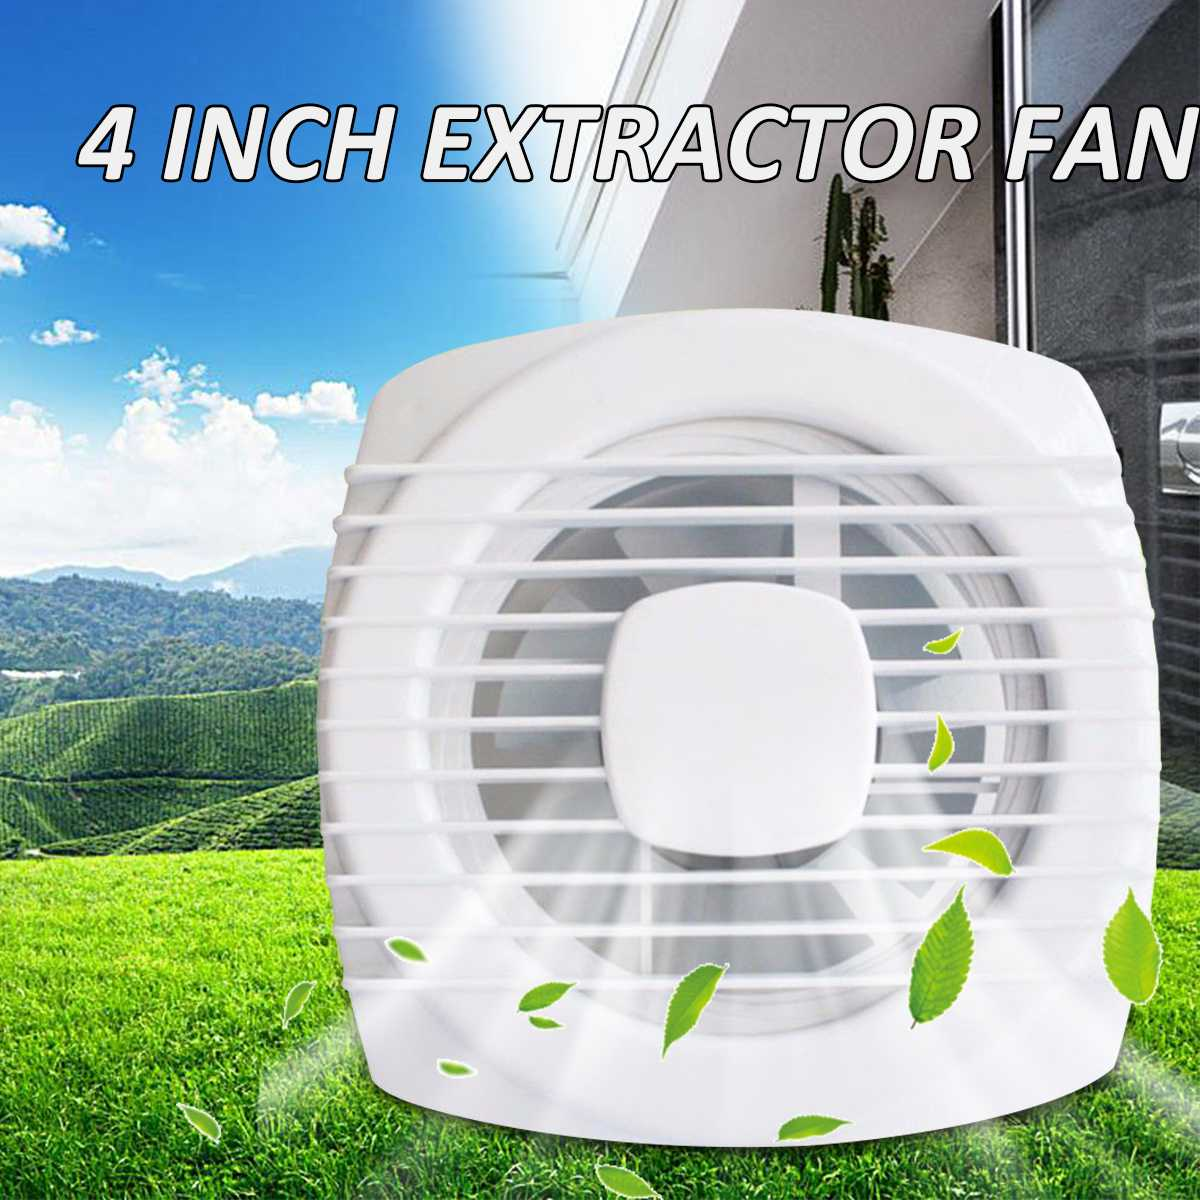 4 Inch 220V 12W Household Silent Extractor Exhaust Fan Hotel Glass Windows Wall Hang Kitchen Bathroom Toilet Ventilation Fan